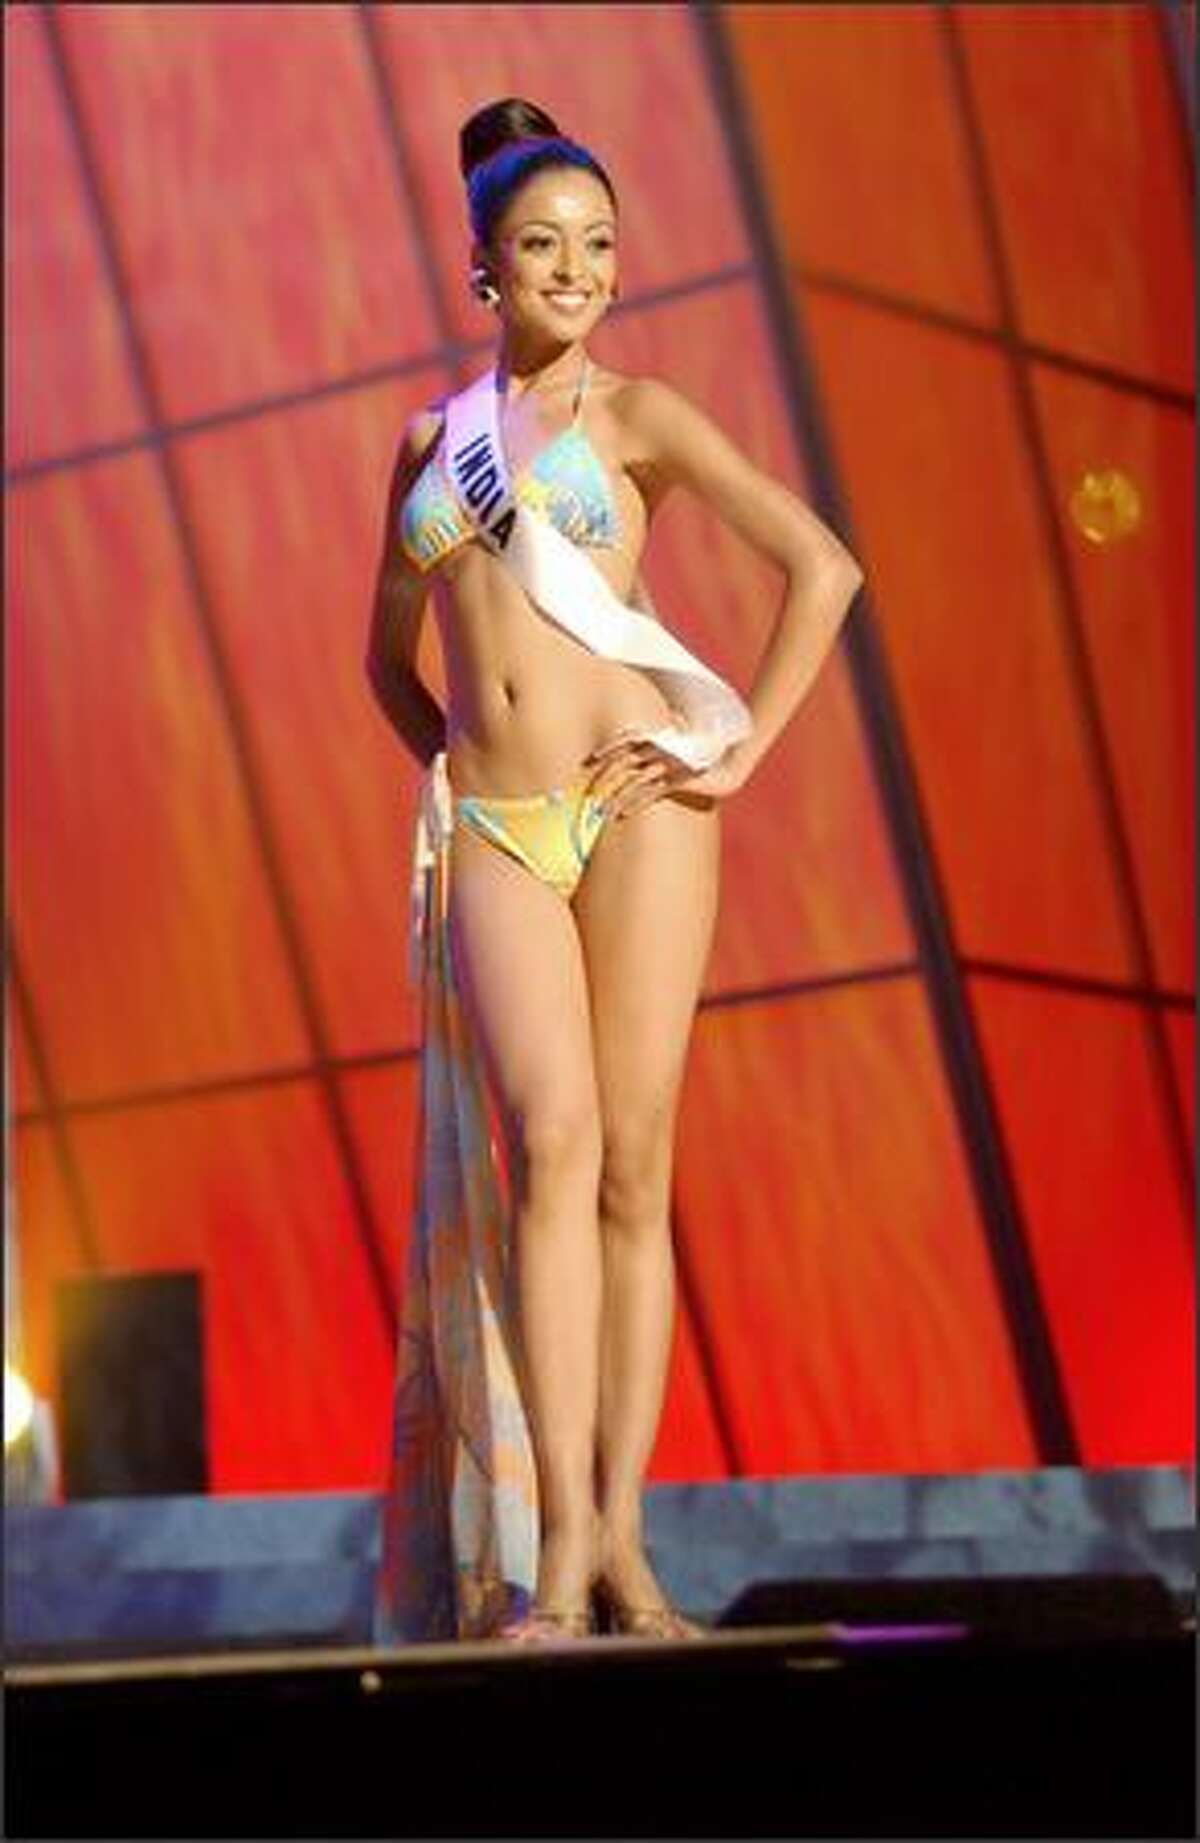 Tanushree Dutta, Miss India, competes in her Endless Sun swimsuit during the 2004 Miss Universe Presentation Show on May 27 at CEMEXPO in Quito, Ecuador. Each delegate is judged by a preliminary panel of distinguished judges in three categories consisting of individual interview, swimsuit competition and evening gown competition. The scores will be tallied and the top 15 delegates will be announced during the NBC broadcast of the 53rd annual Miss Universe competition on June 1 at 9 p.m. (delayed PT).